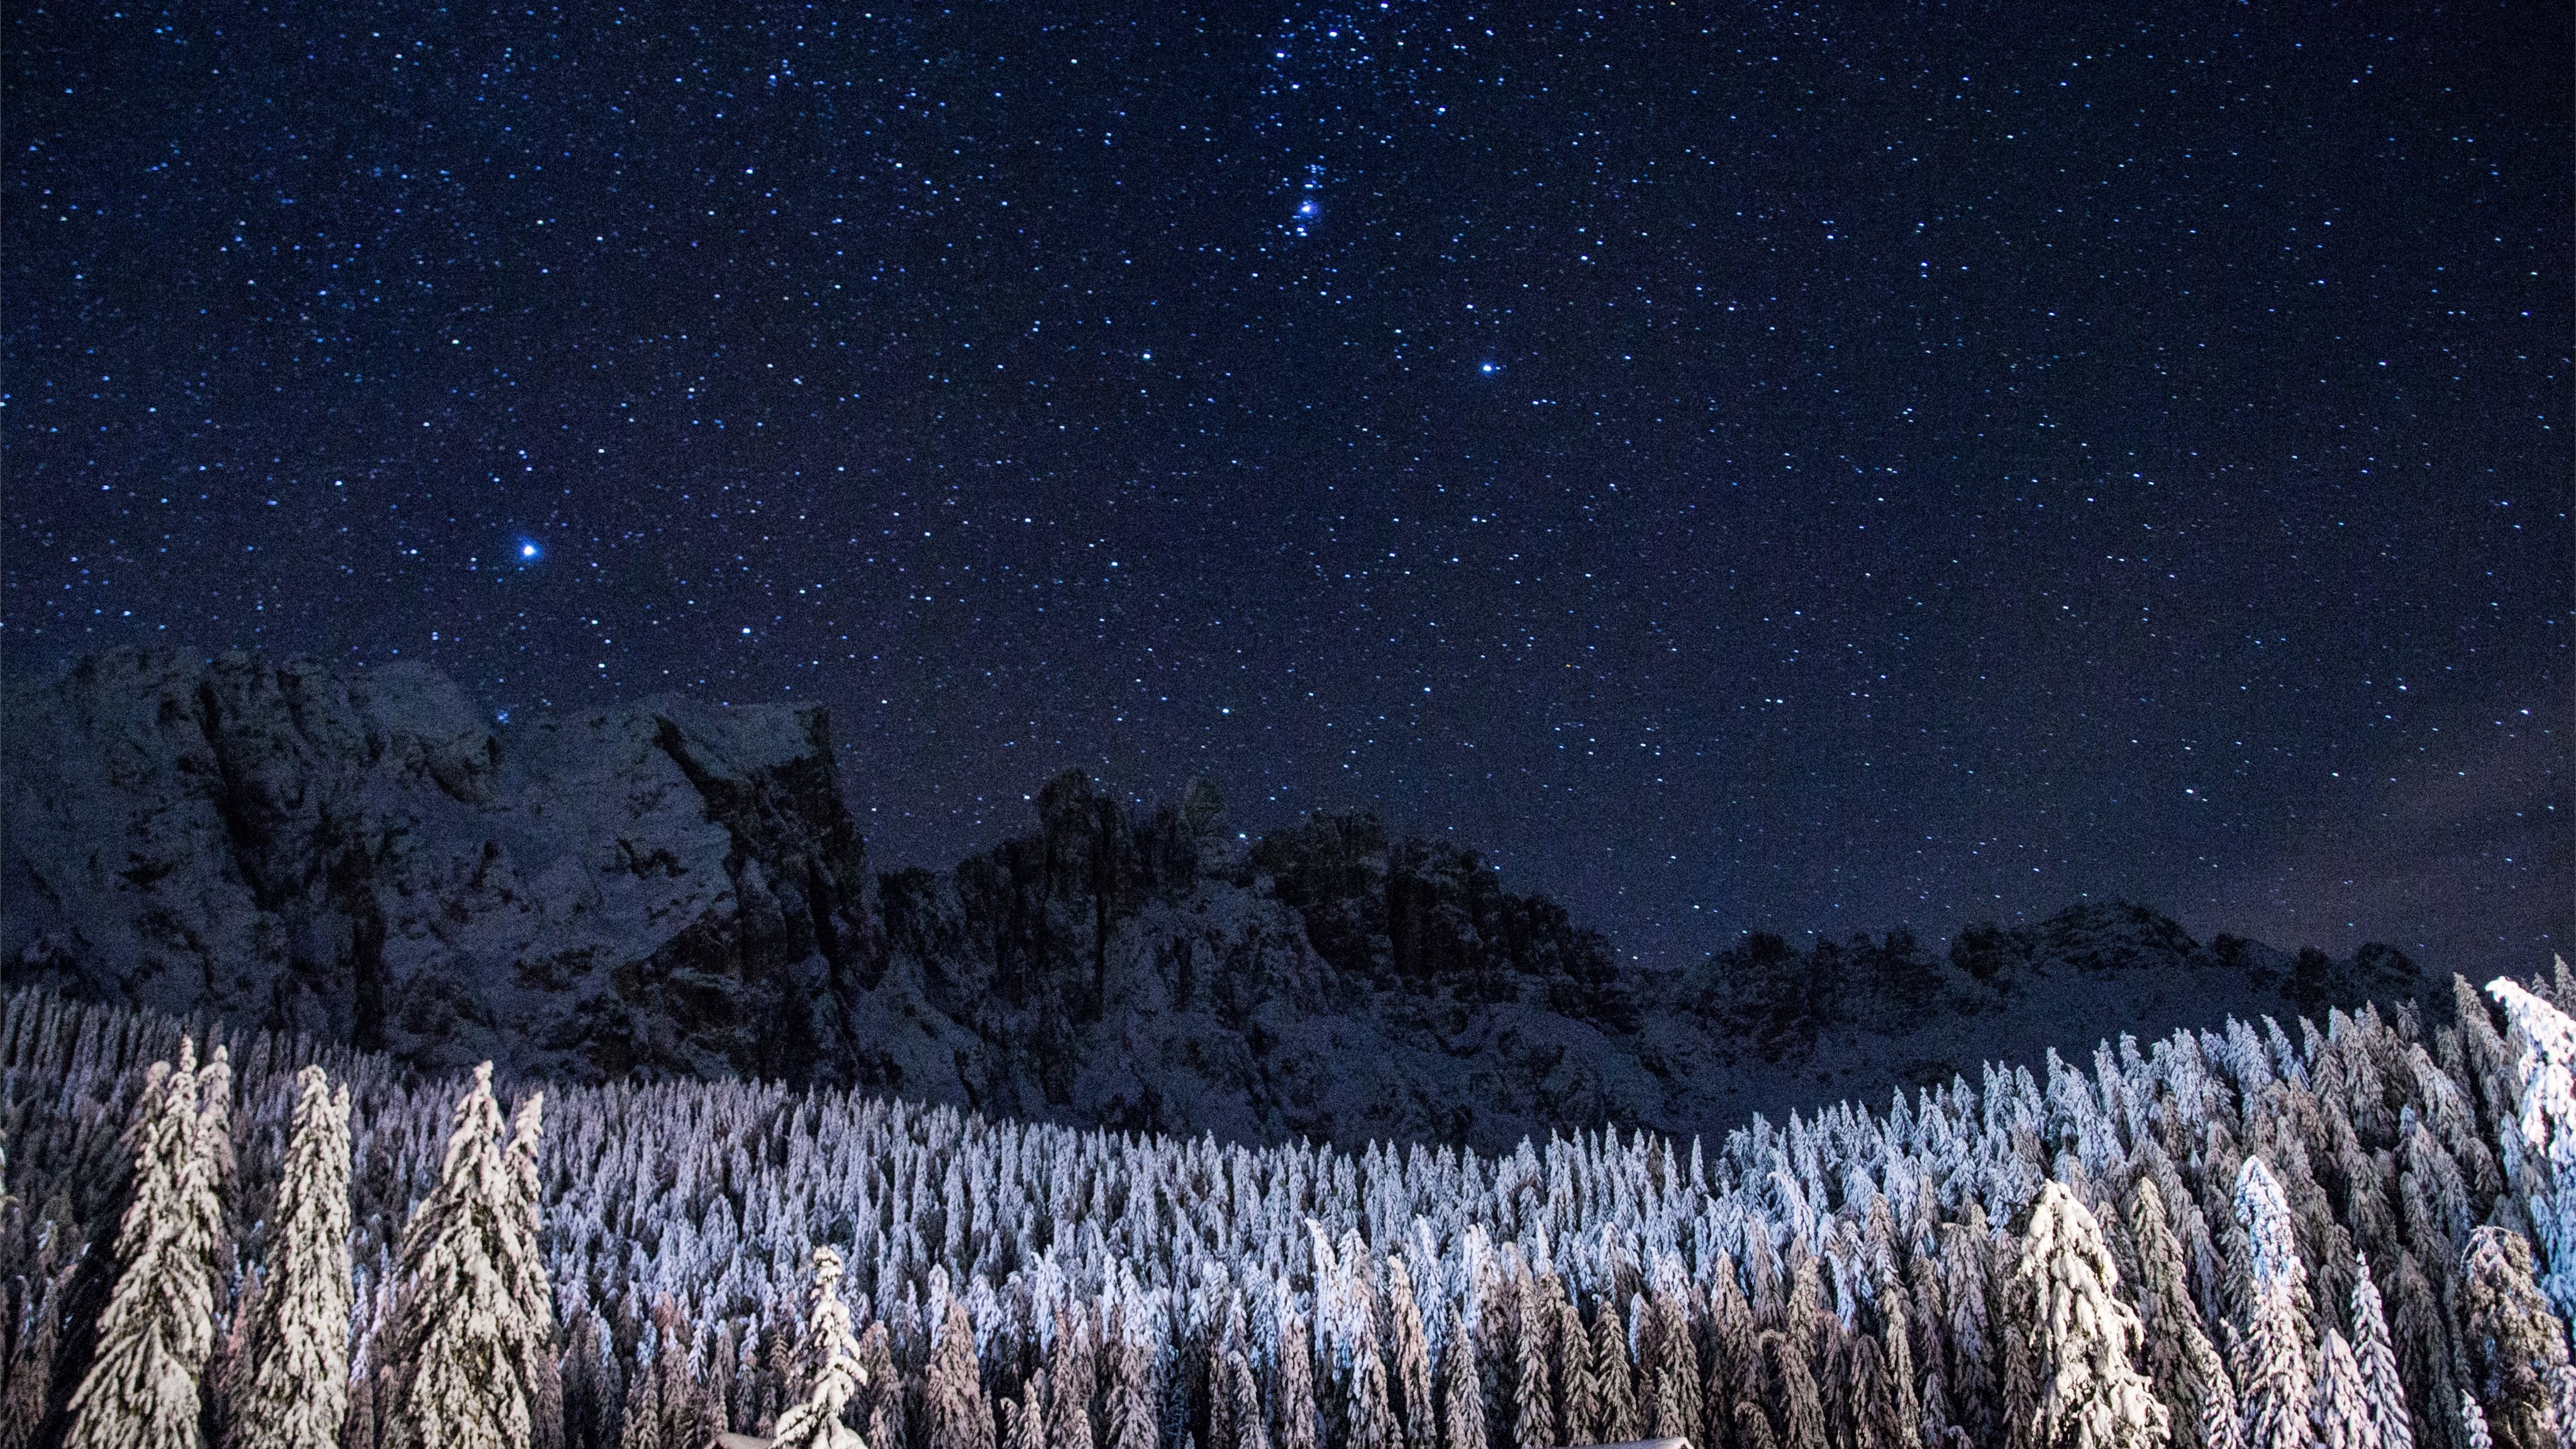 Night Sky Over A Snowy Forest Mac Wallpaper Download